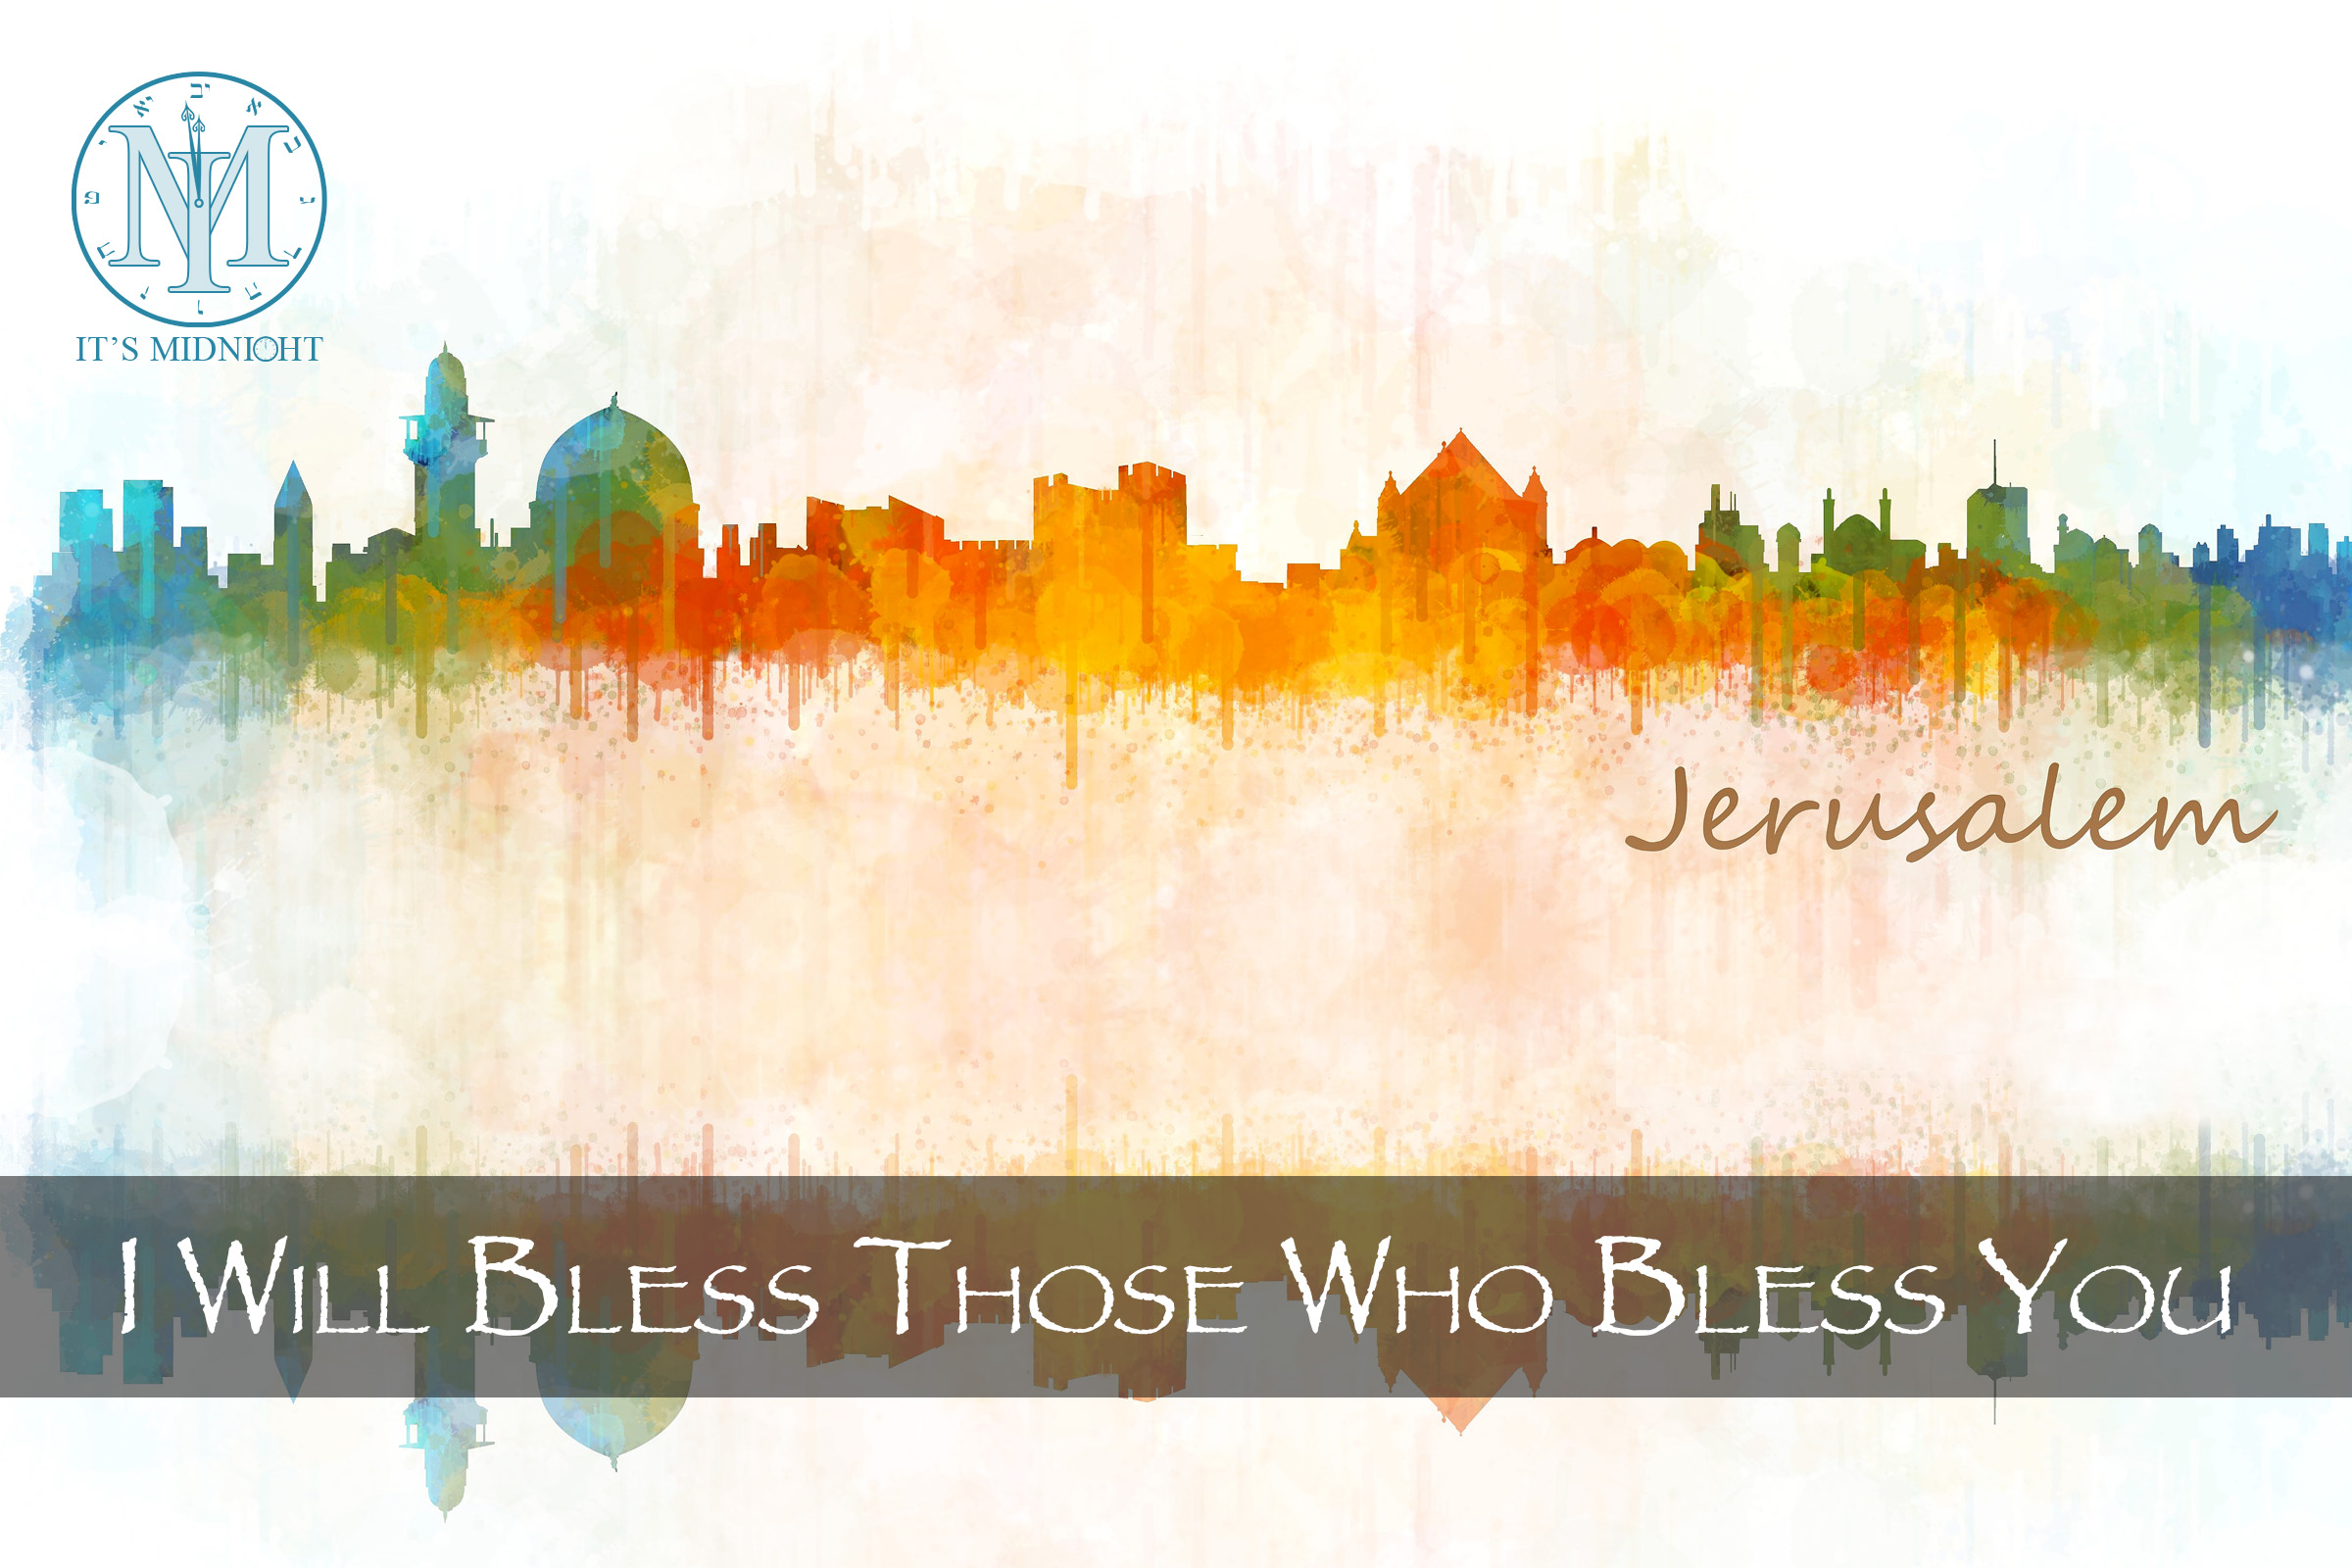 I Will Bless Those Who Bless You.jpg